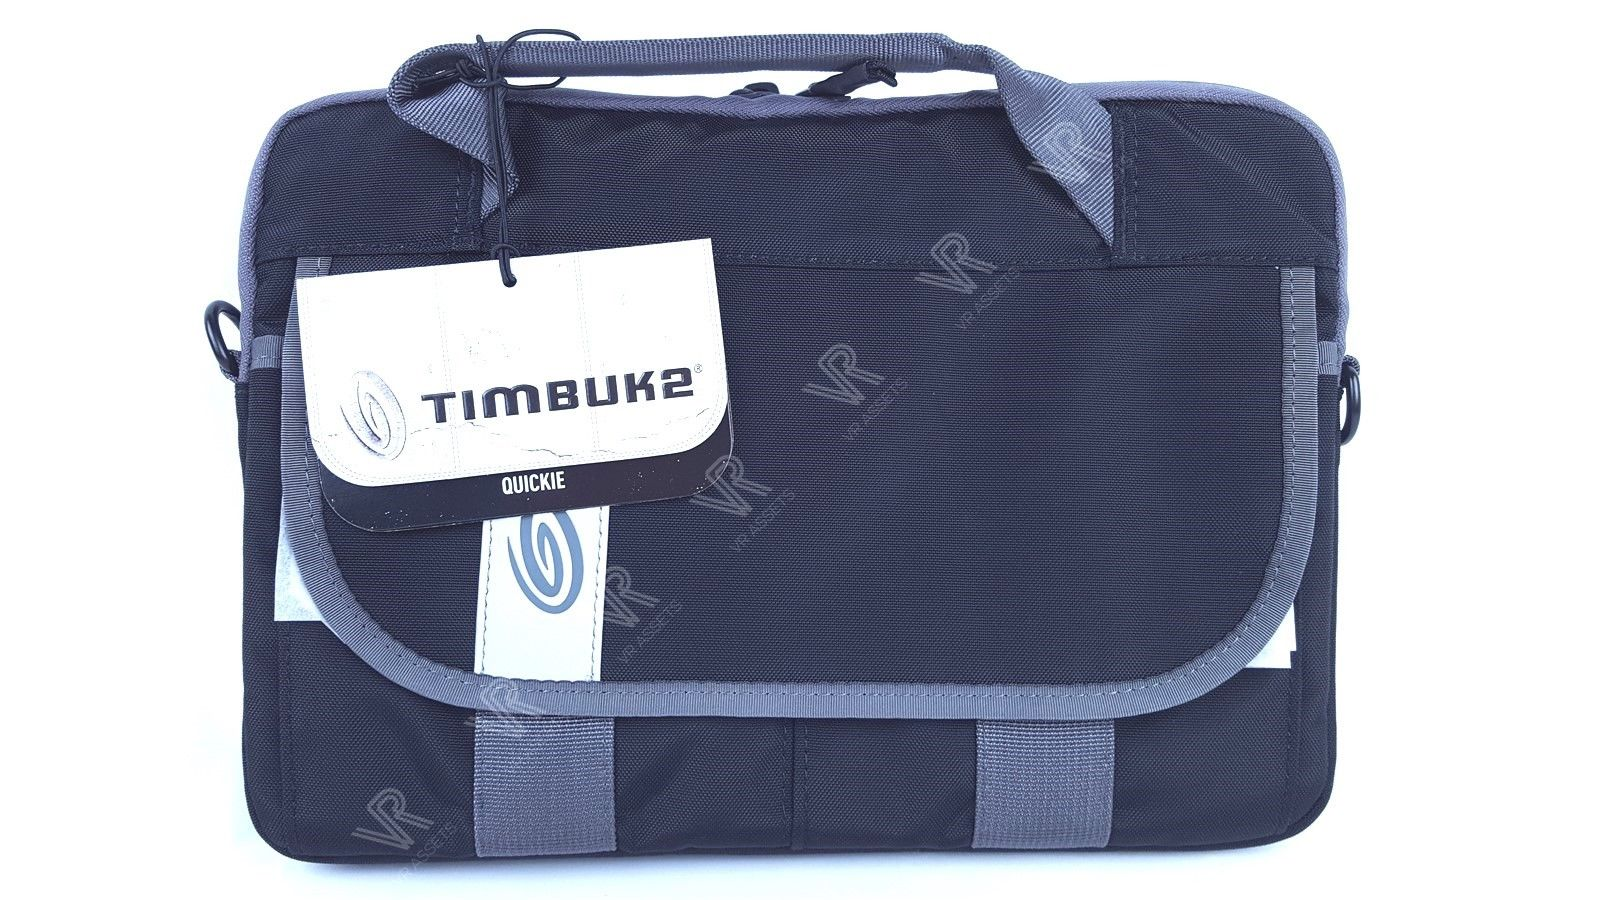 "Dell Timbuk2 10.2"" Quickie Netbook Tablet Laptop Case Bag Black YRMX4 0YRMX4 NEW"